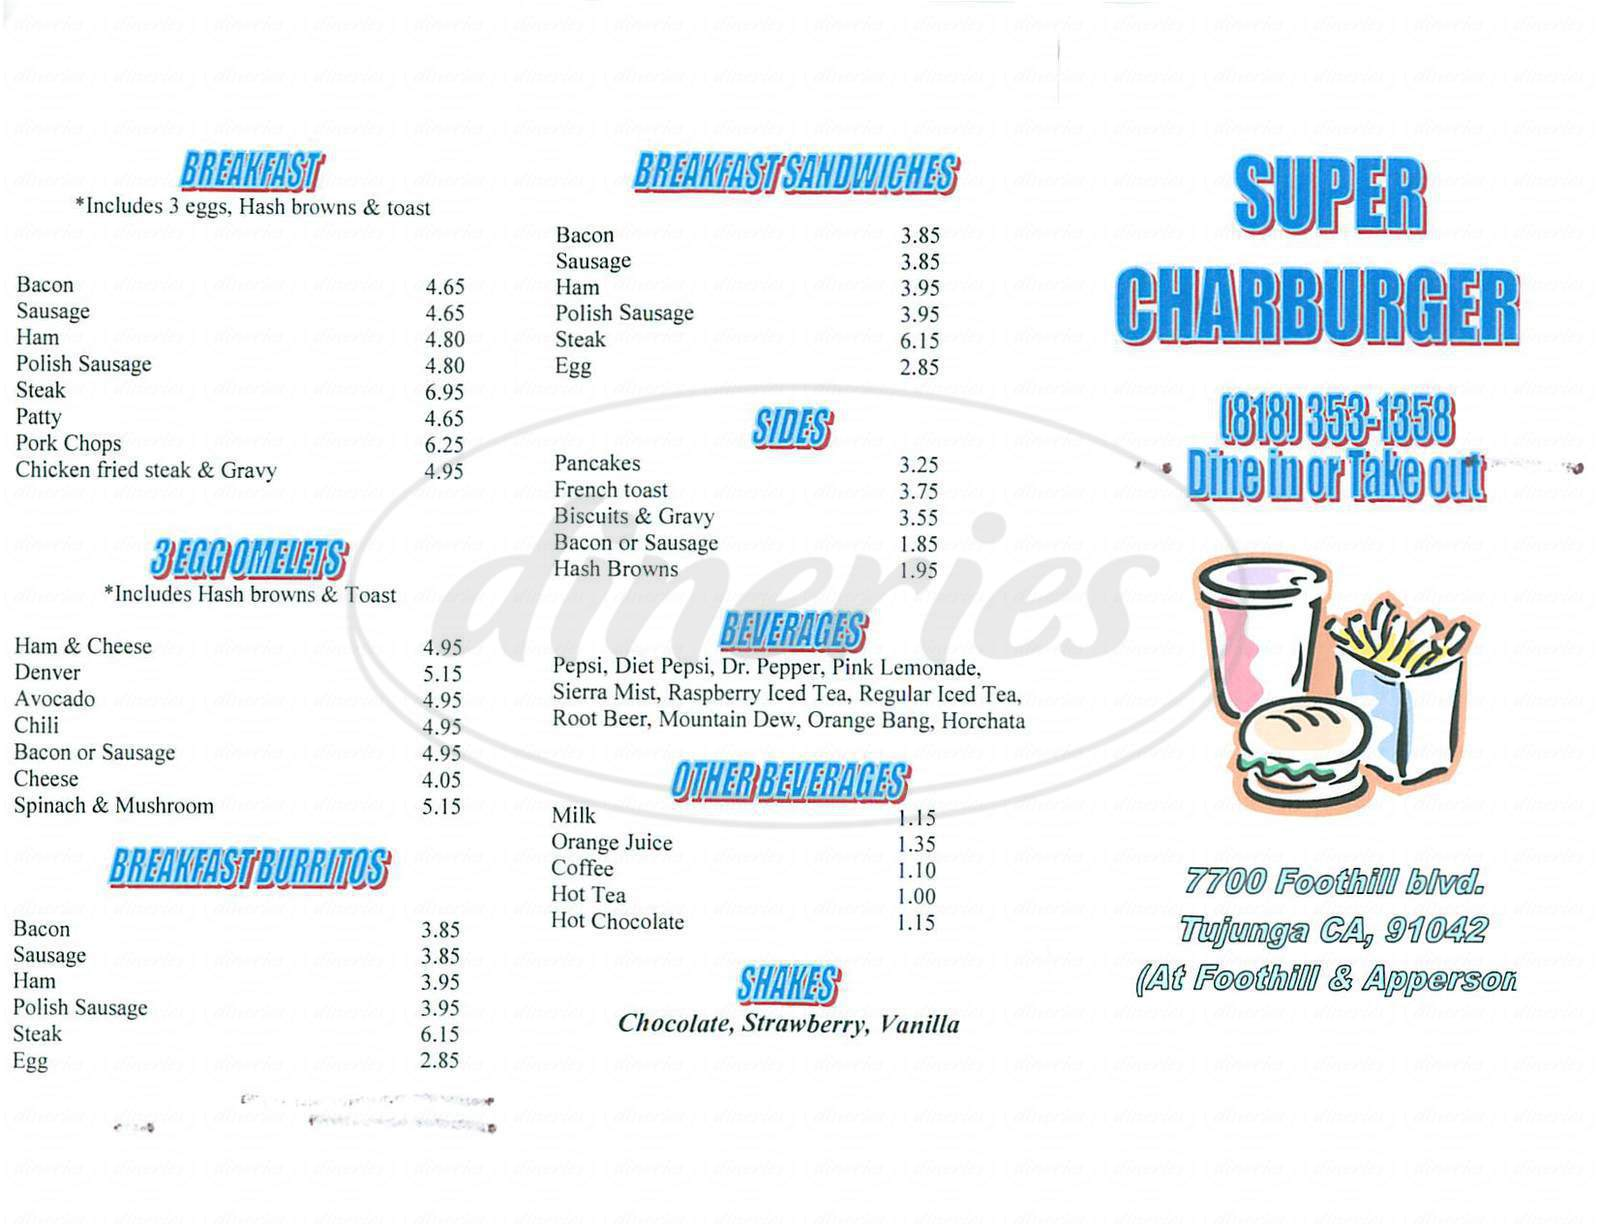 menu for Super Charburger